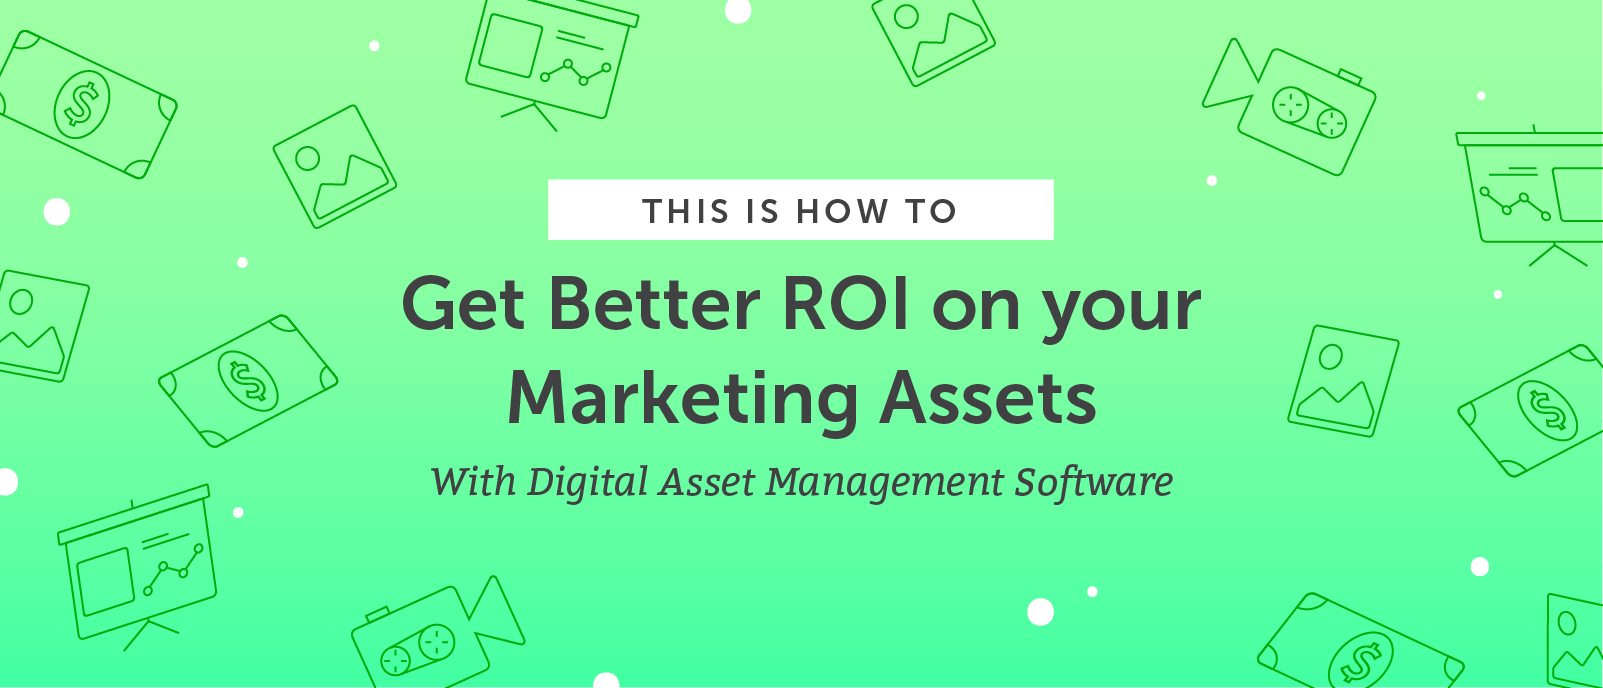 How to Get Better ROI on your Marketing Assets with Digital Asset Management Software